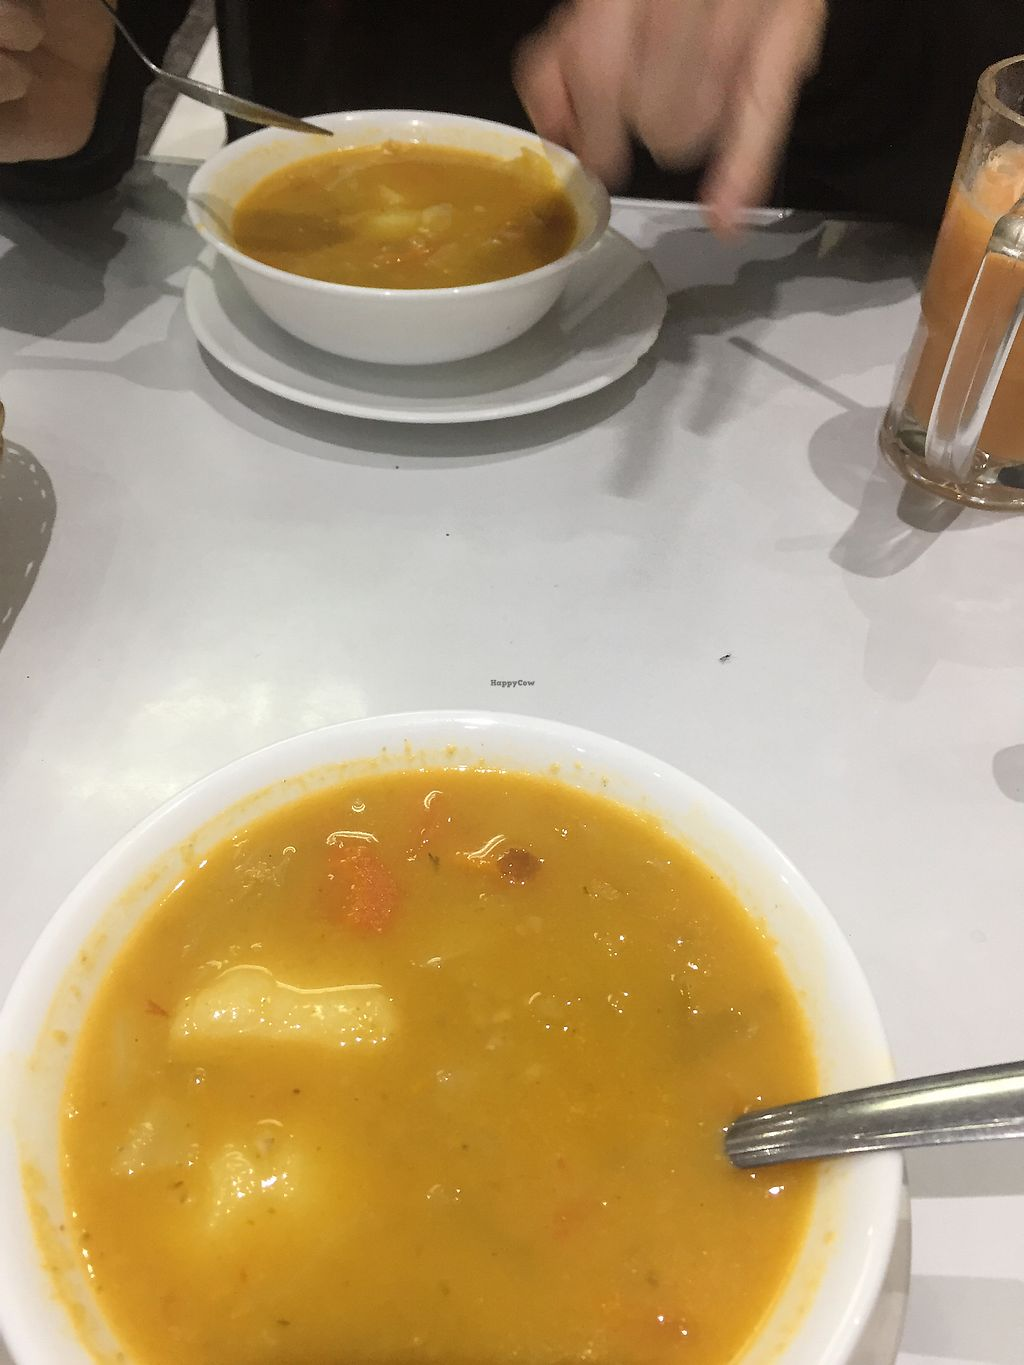 """Photo of Natural Vid Restaurante Vegetariano  by <a href=""""/members/profile/Dianebg"""">Dianebg</a> <br/>Soup of the day  <br/> November 17, 2017  - <a href='/contact/abuse/image/97658/326423'>Report</a>"""